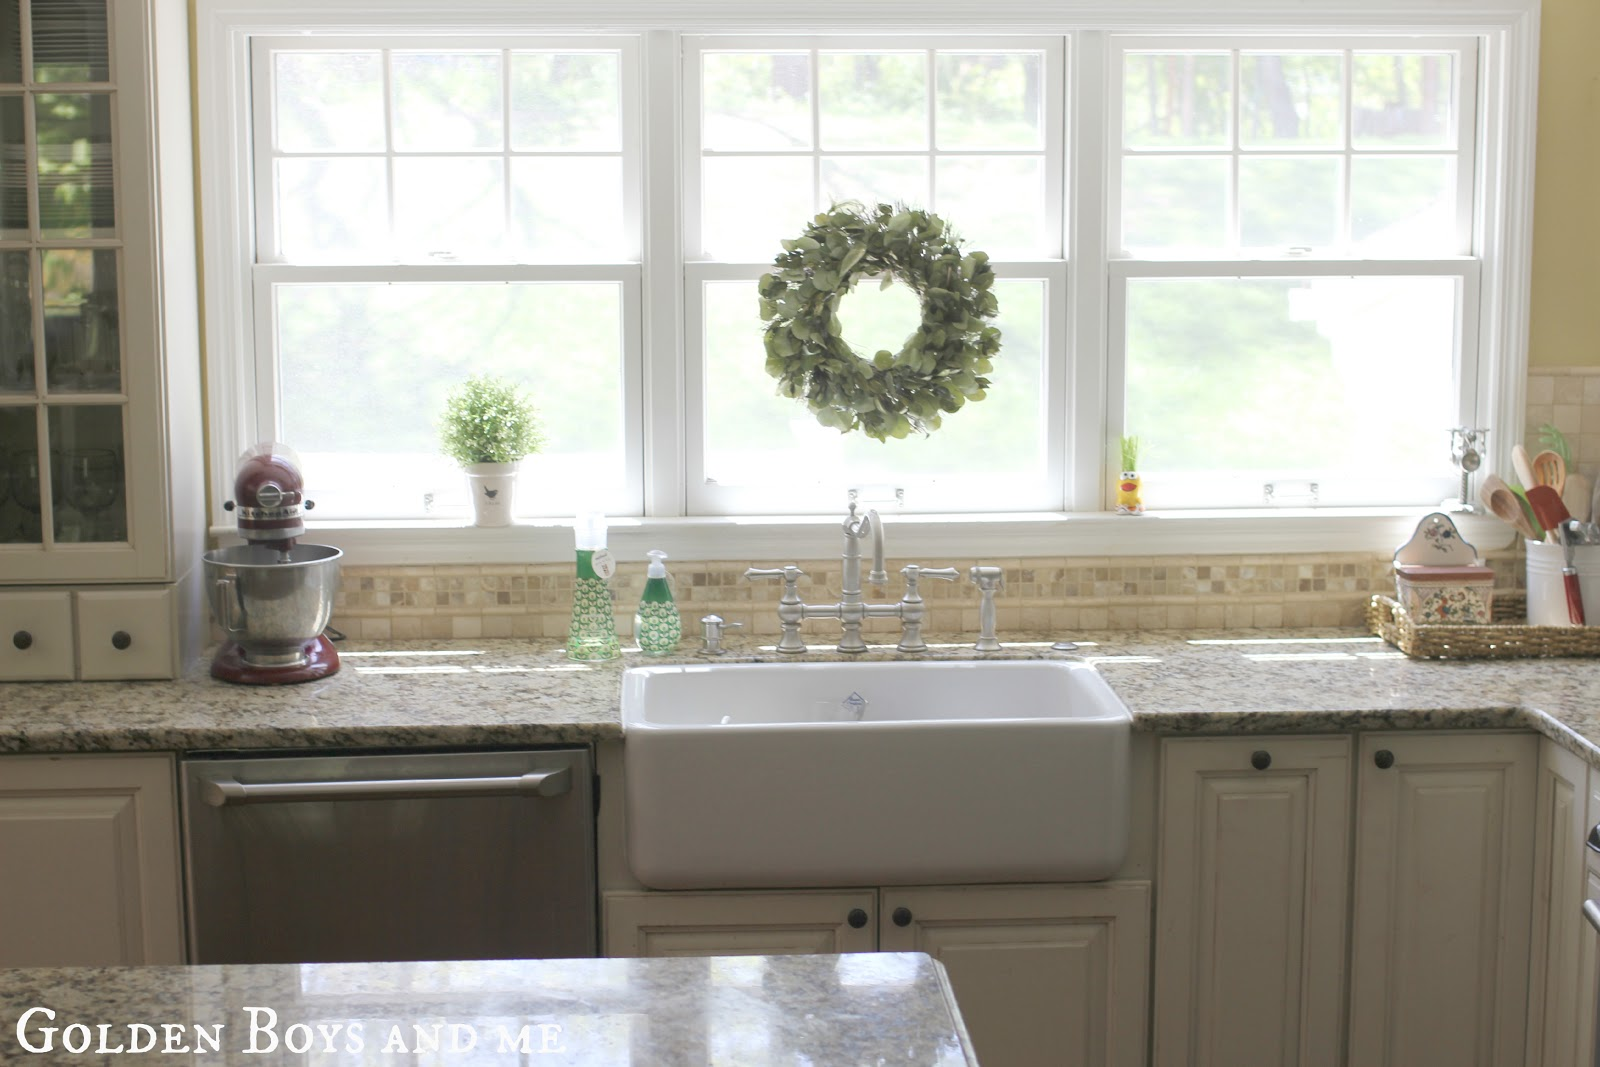 a tour of our kitchen farm kitchen sink DIY kitchen with white cabinets and cherry island with Shaw s farm sink via www goldenboysandme